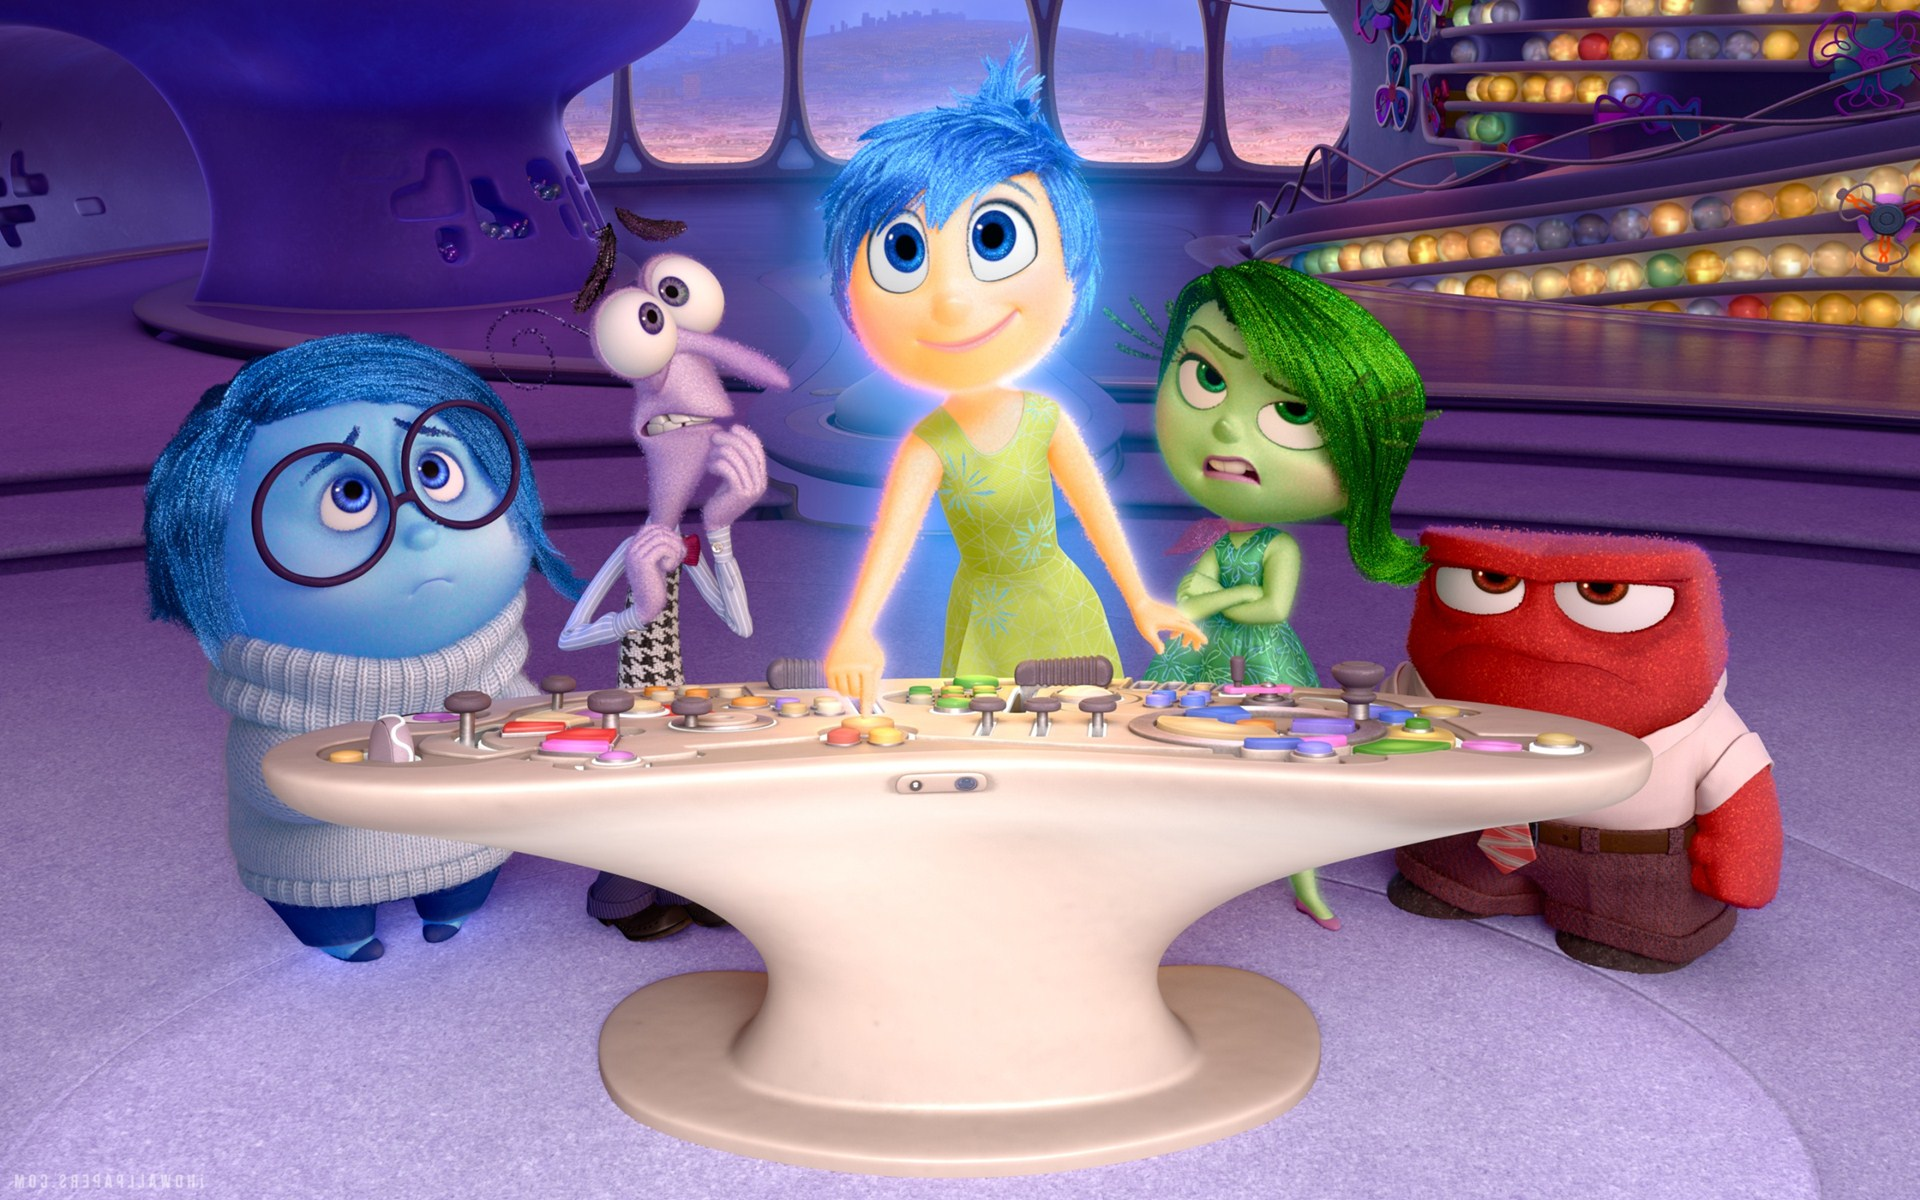 The personalities inside Riley's head - Sadness (voiced by Phyllis Smith), Fear (voiced by Bill Hader), Joy (voiced by Amy Poehler), Disgust (voiced by Mindy Kaling) and Anger (voiced by Lewis Black) in Inside Out (2015)